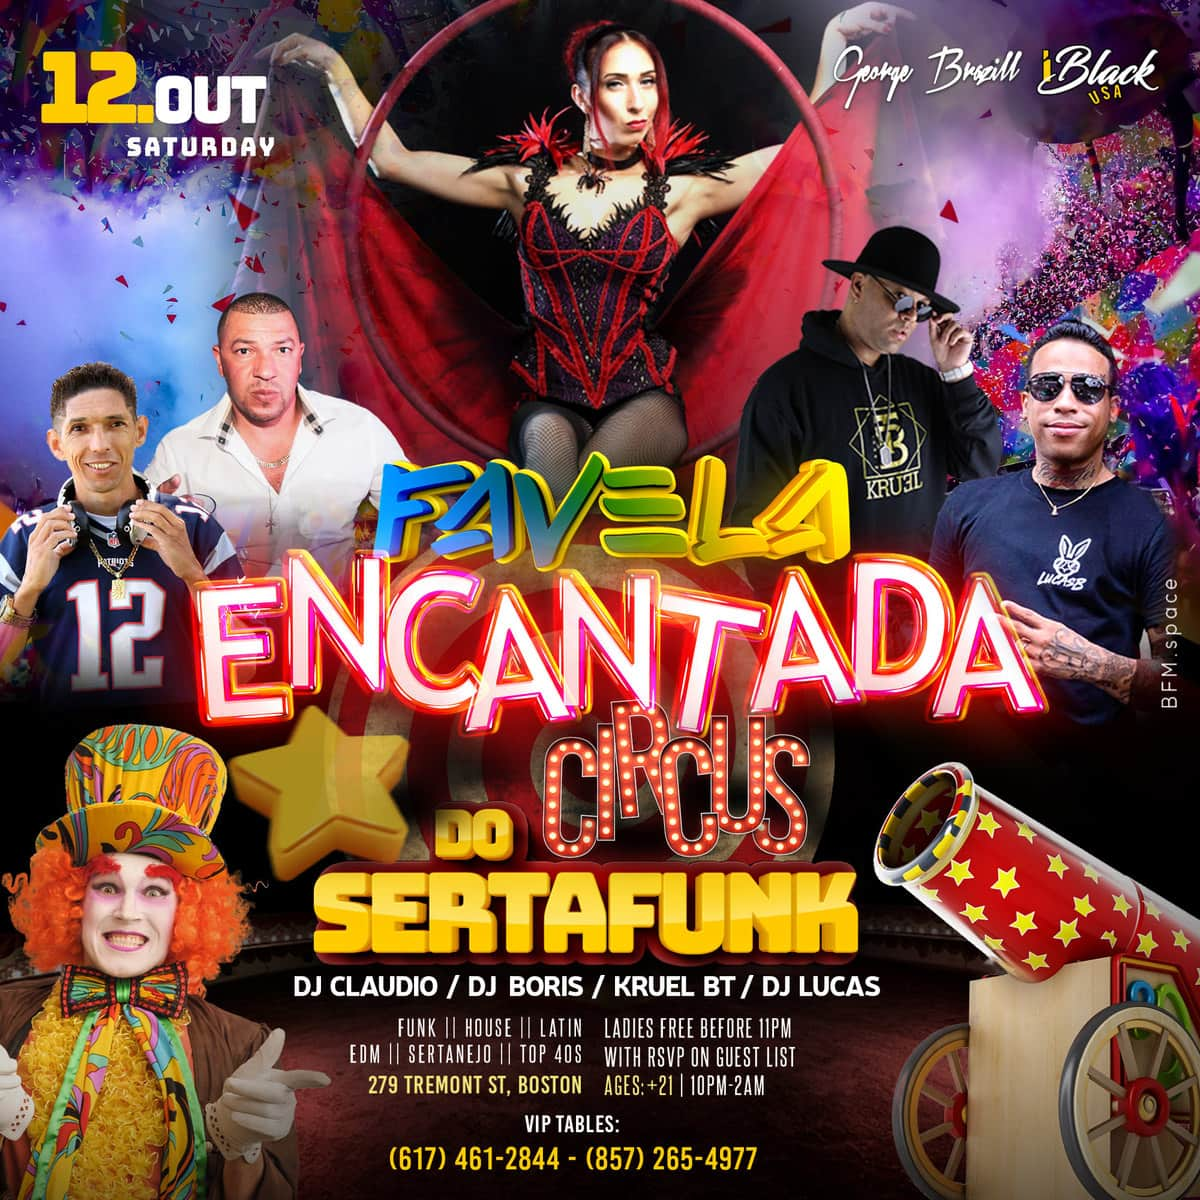 FAVELA ENCANTADA CIRCUS DO SERTAFUNK - 12 OUT - CANDIBAR BOSTON | iBlackUSA